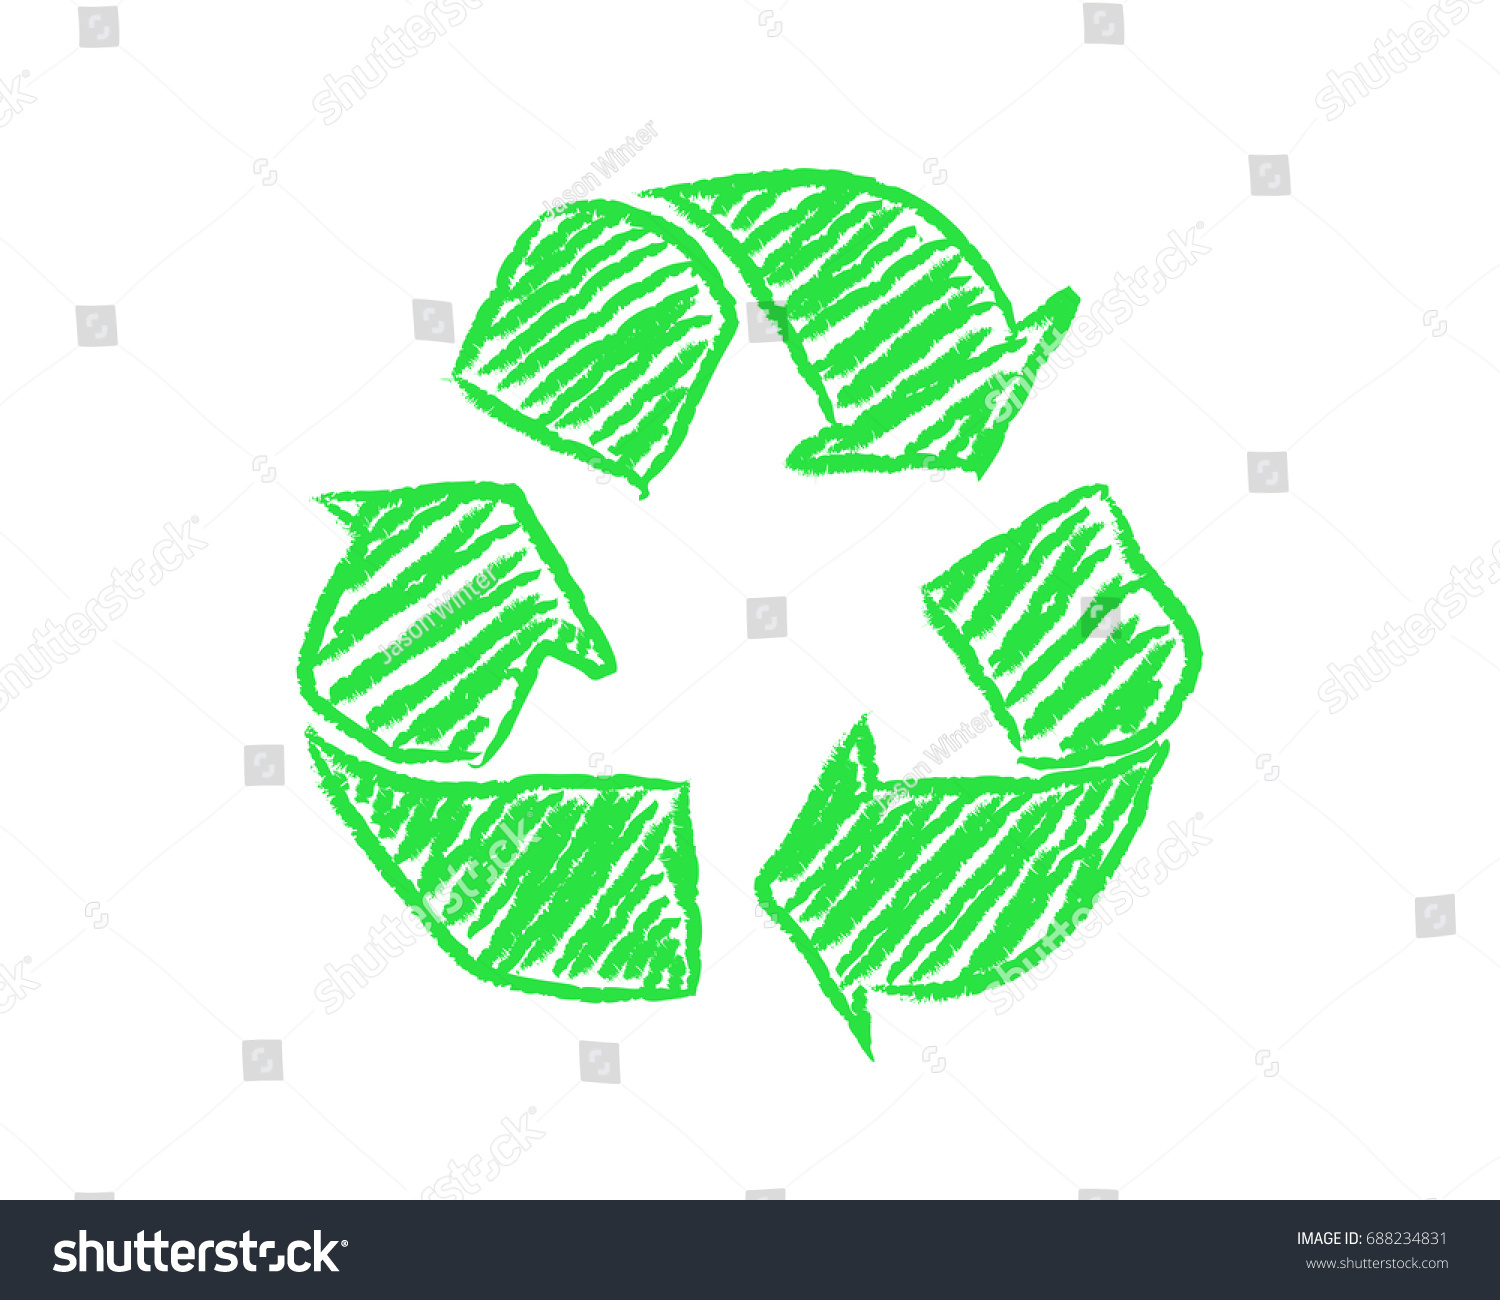 Hand drawn green recycle symbol on stock vector 688234831 hand drawn green recycle symbol on white background biocorpaavc